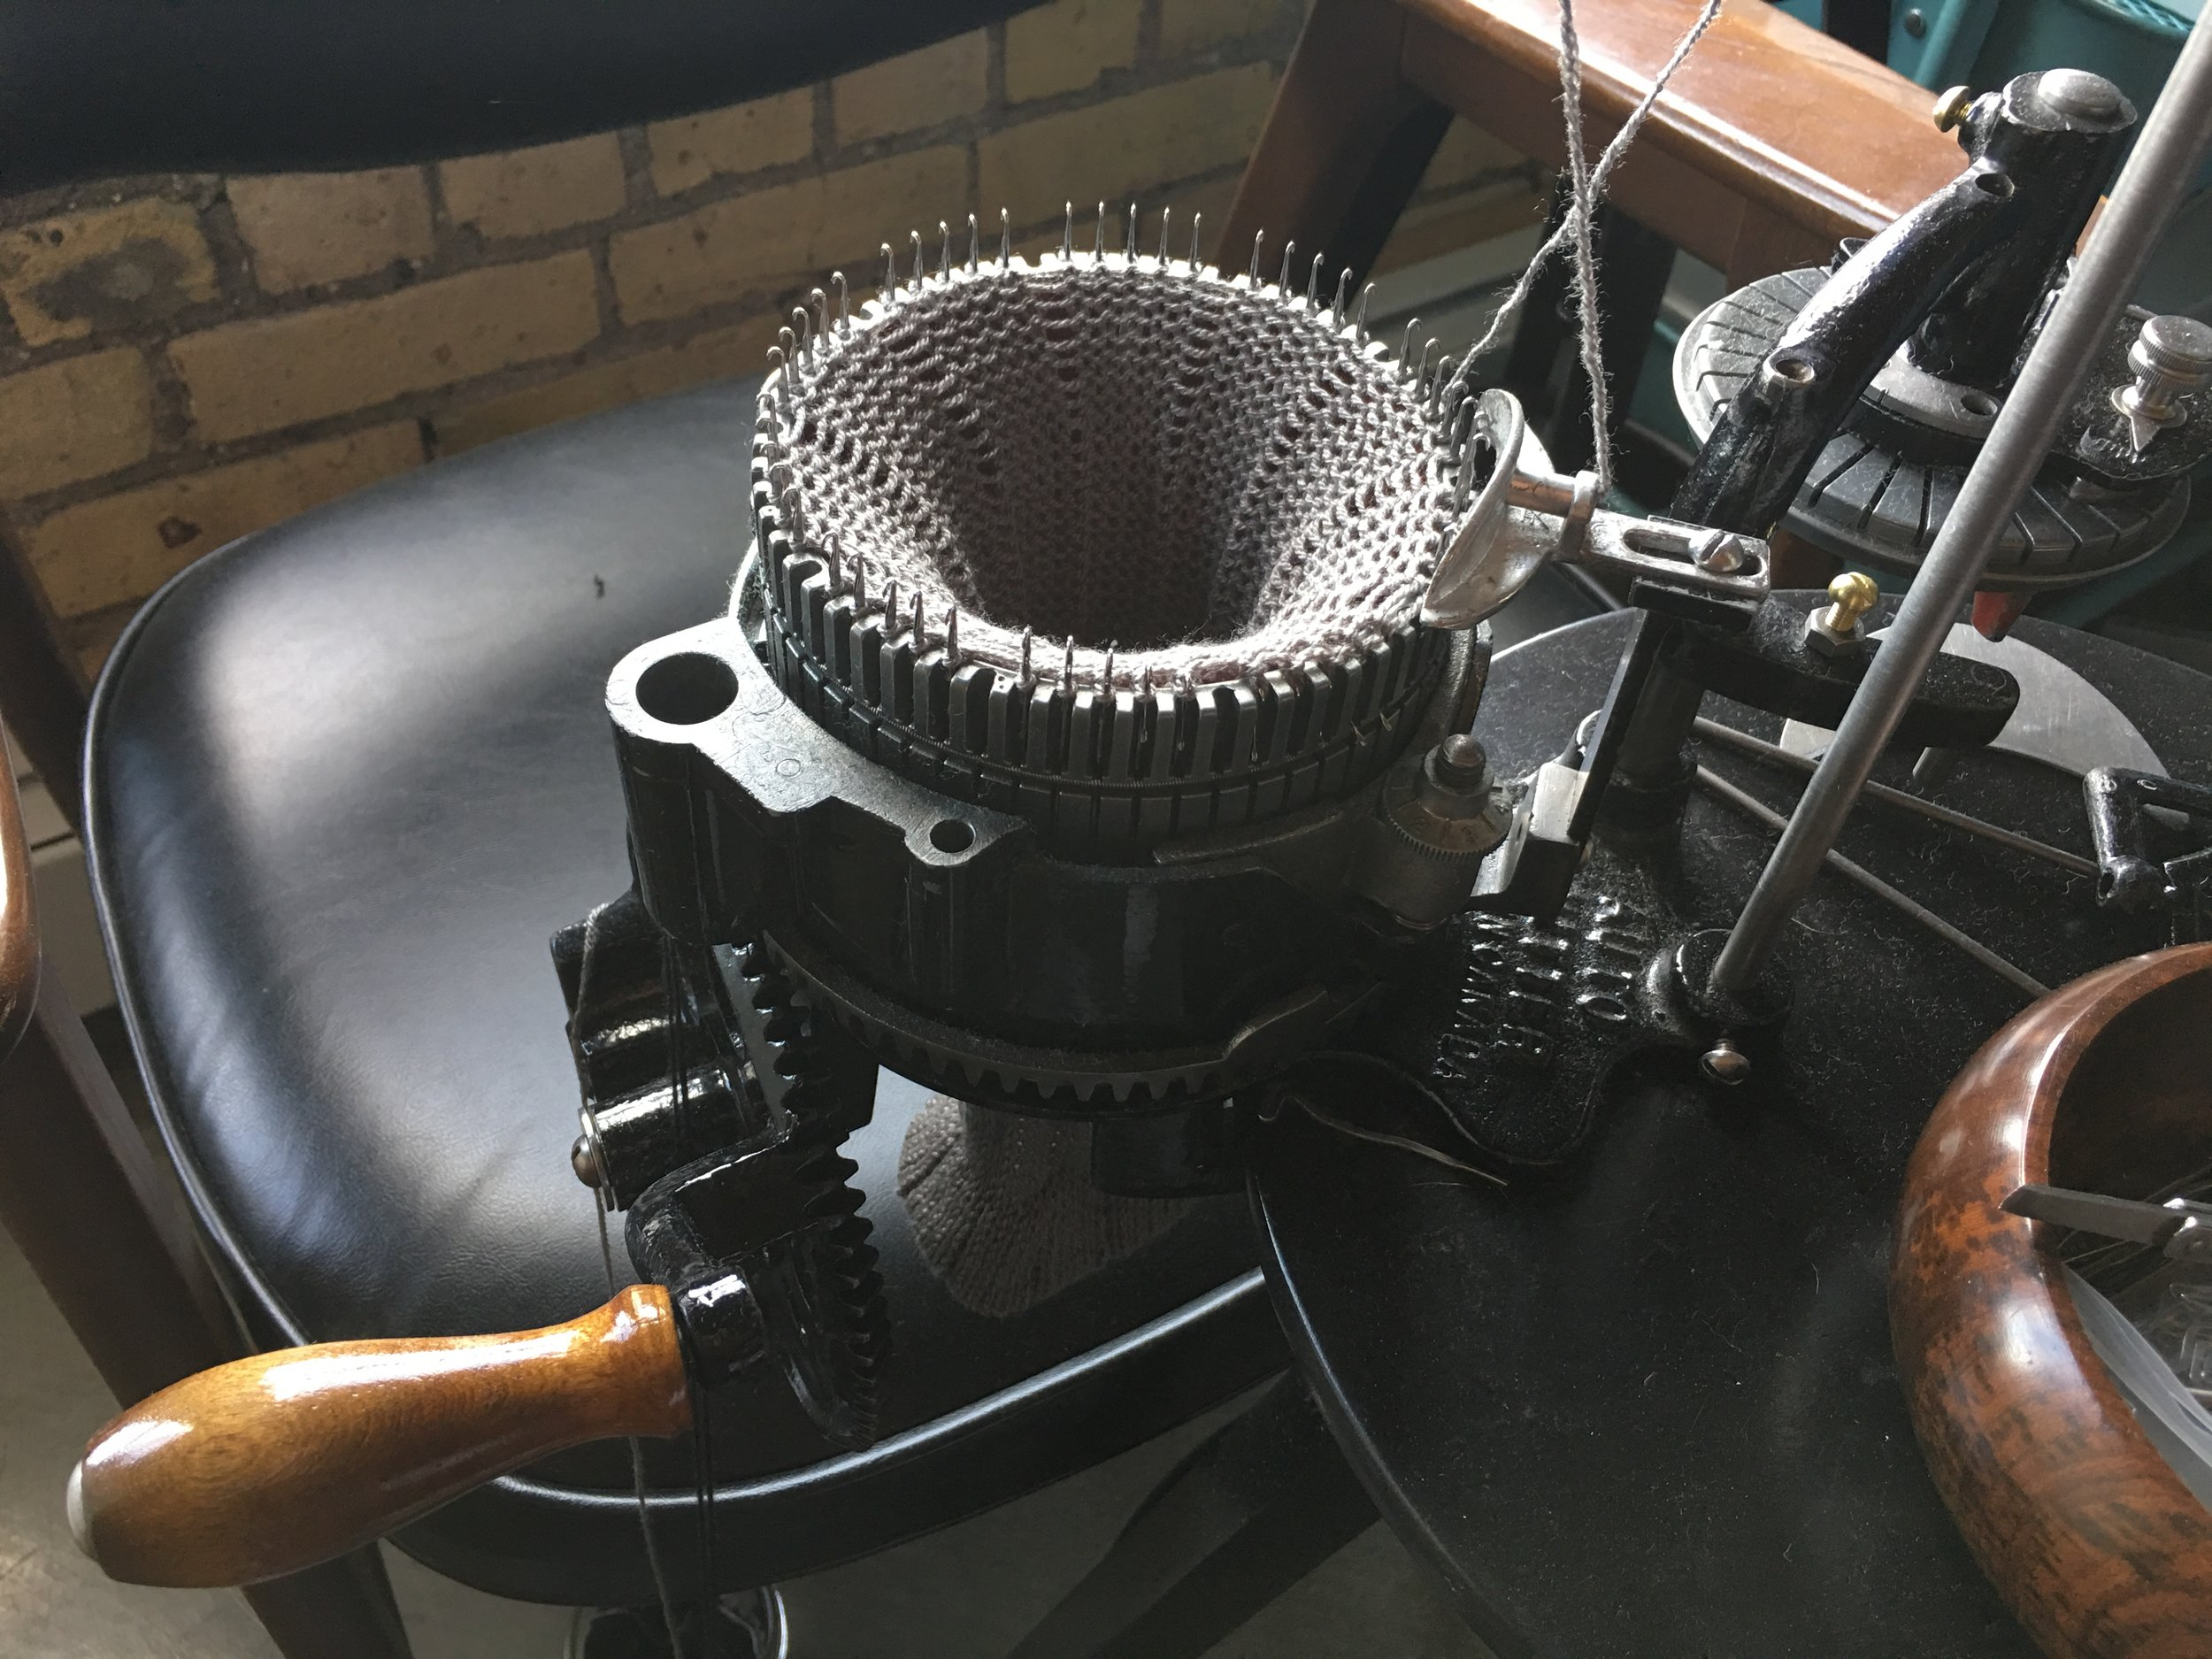 Vintage knitting machines make light work of long jobs. We make dye blanks and rock out long tubes and flat knit sheets for you in no time! Contact us  or try a sample project   here  .